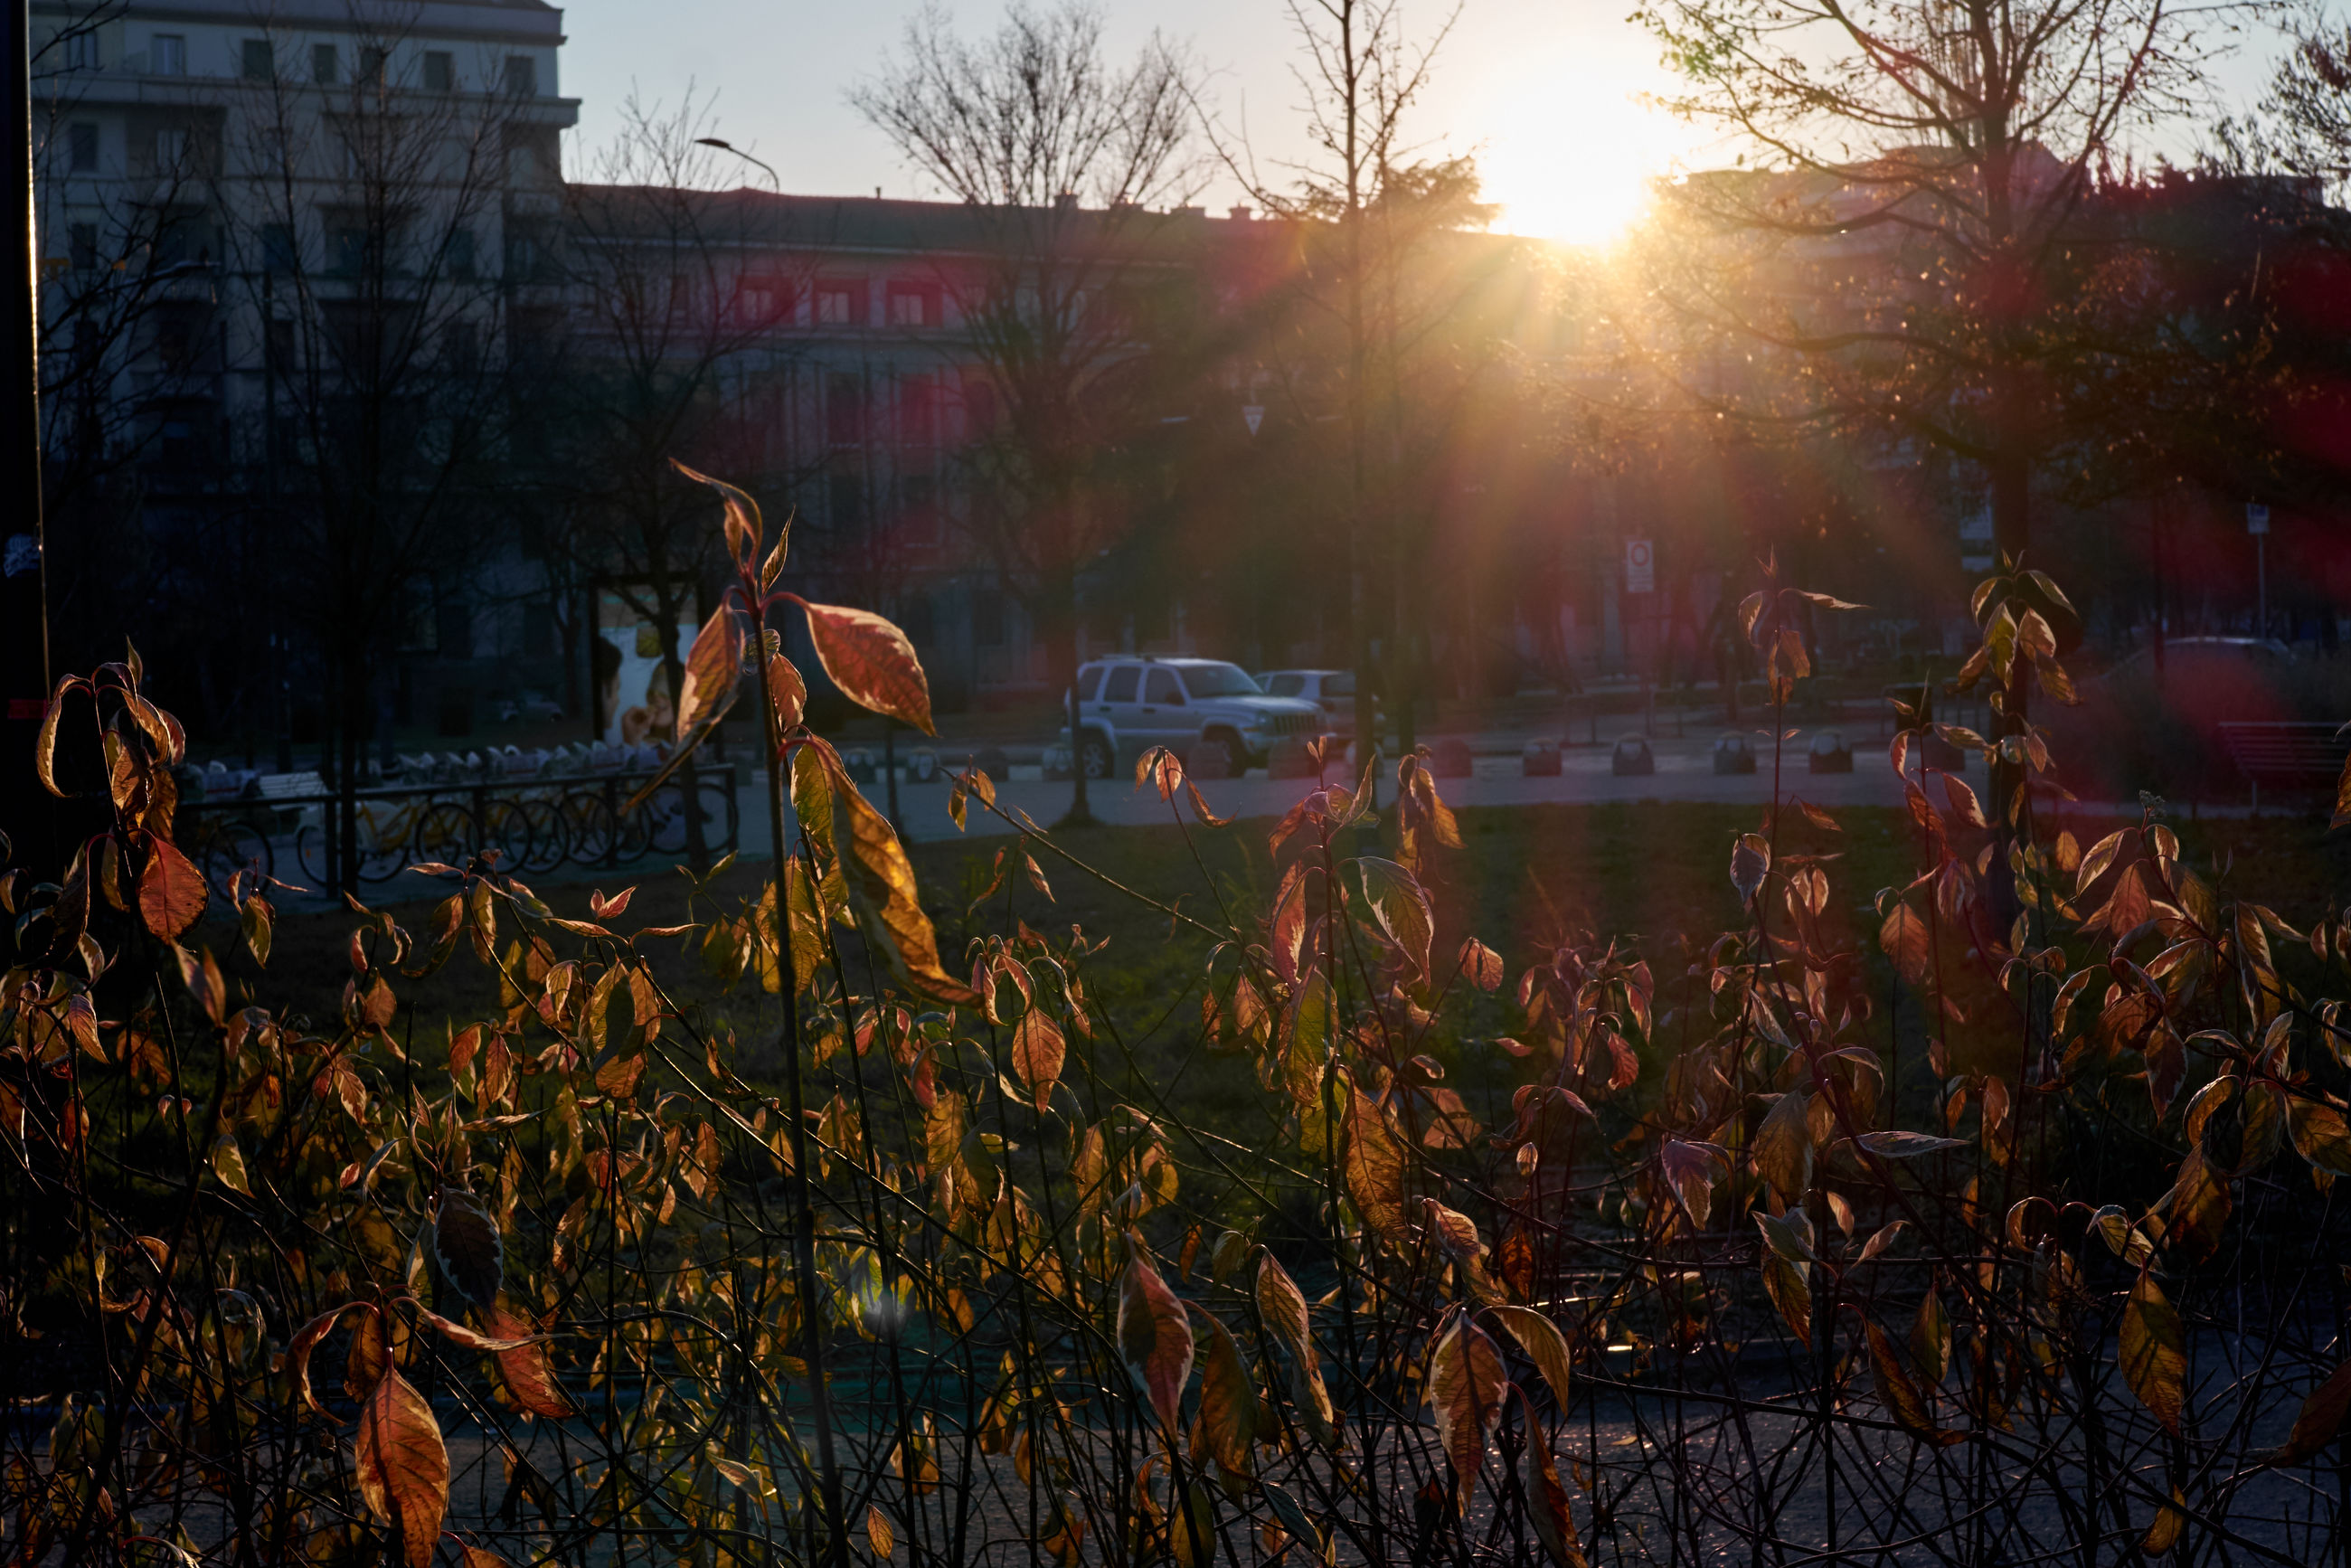 building exterior, lens flare, sunset, sunlight, built structure, architecture, tree, outdoors, city, sunbeam, nature, no people, sky, grass, day